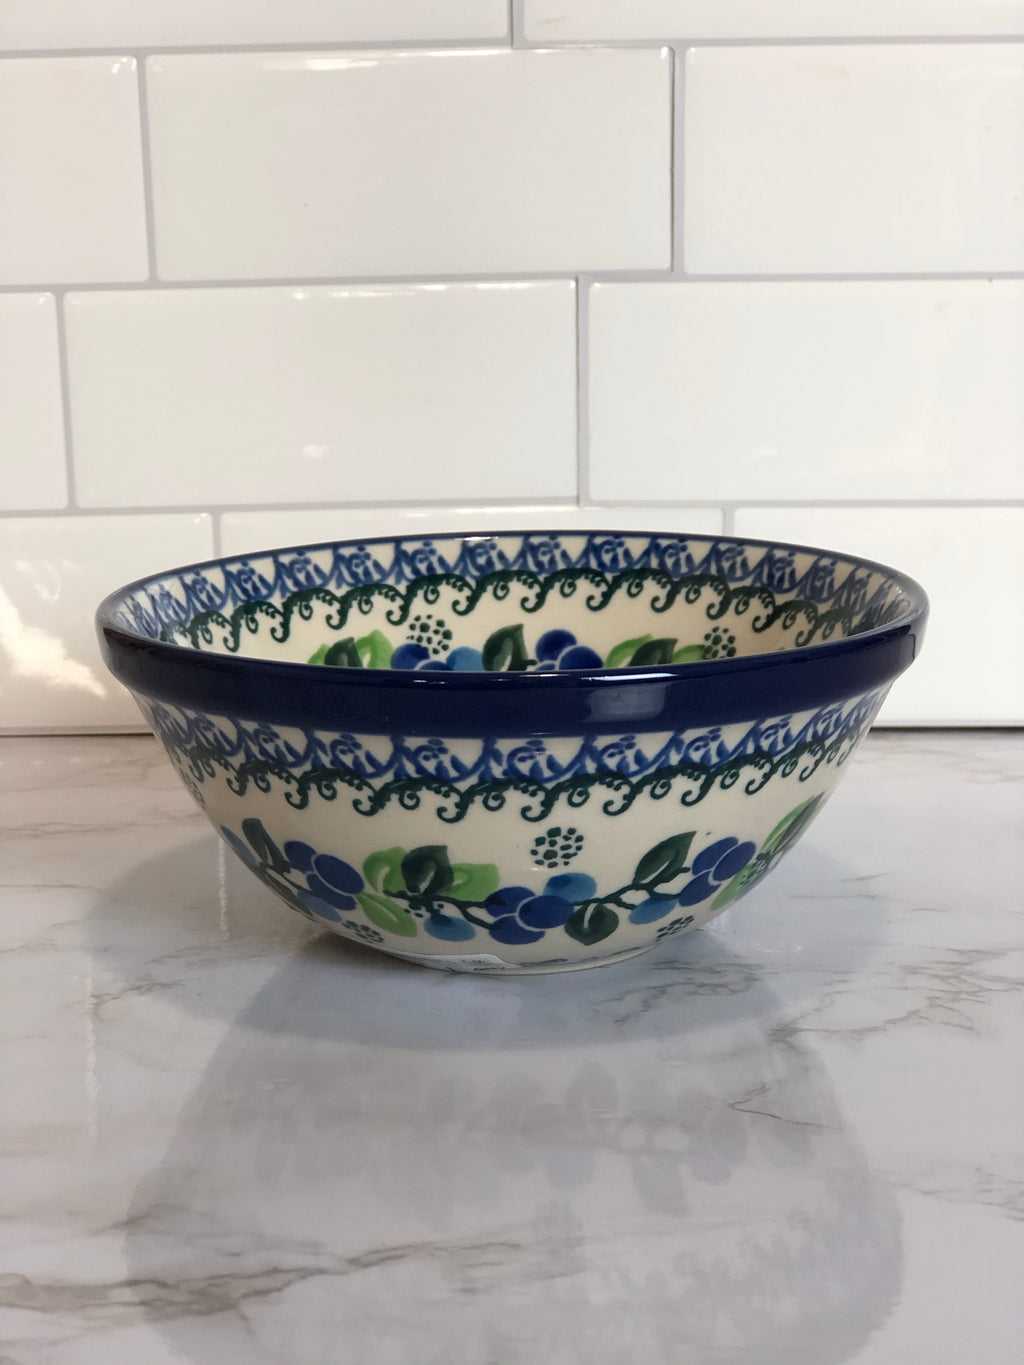 Small Cereal Bowl - Shape 59 - Pattern 1416